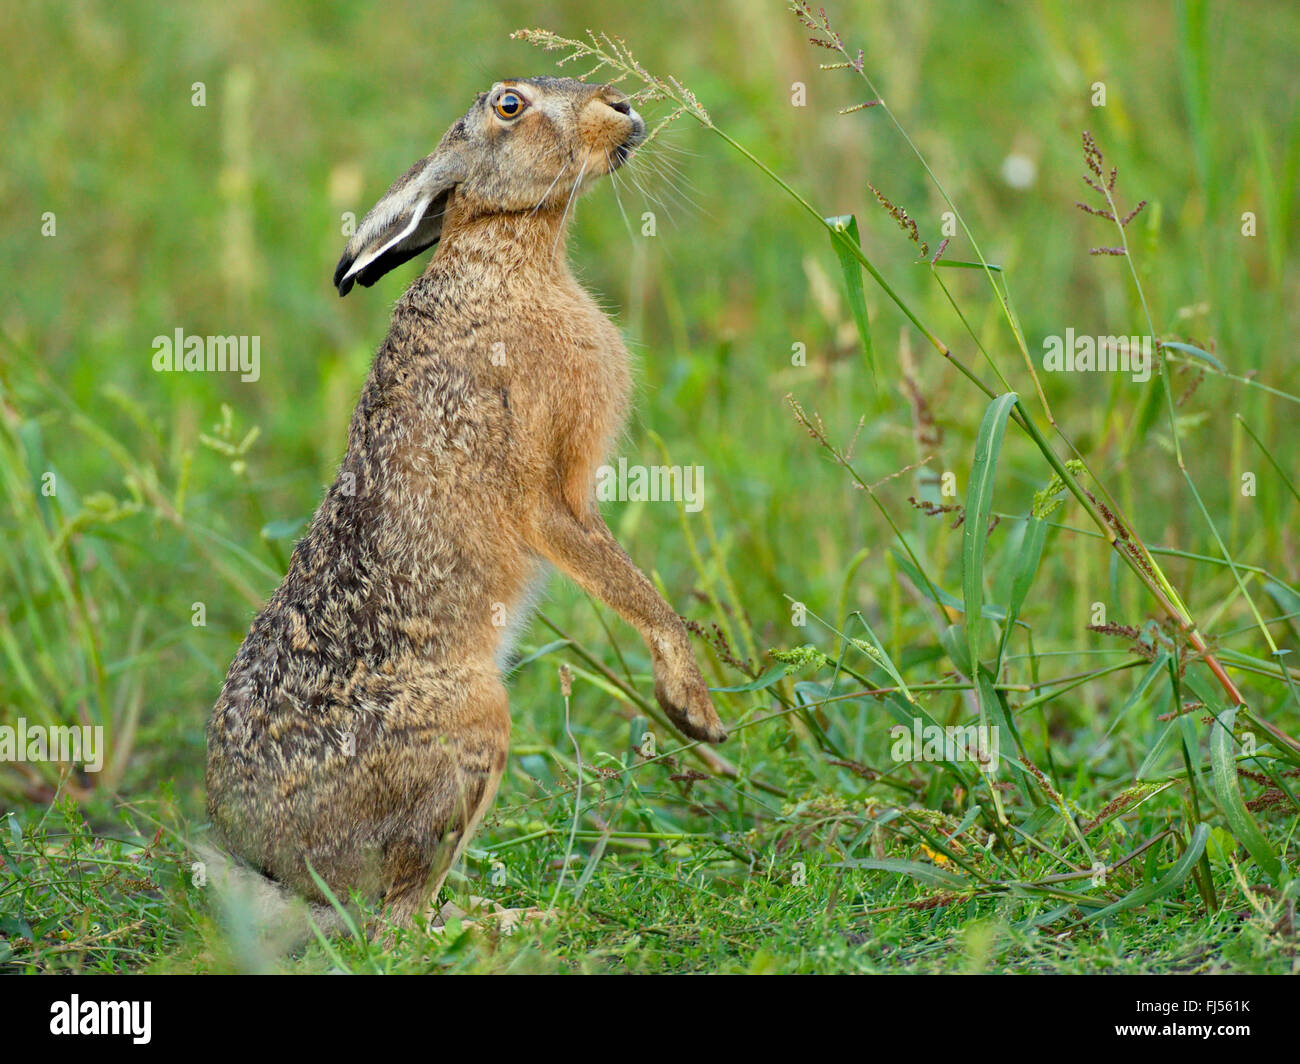 European hare, Brown hare (Lepus europaeus), feeds on a grass ear standing upright, Germany, Brandenburg - Stock Image